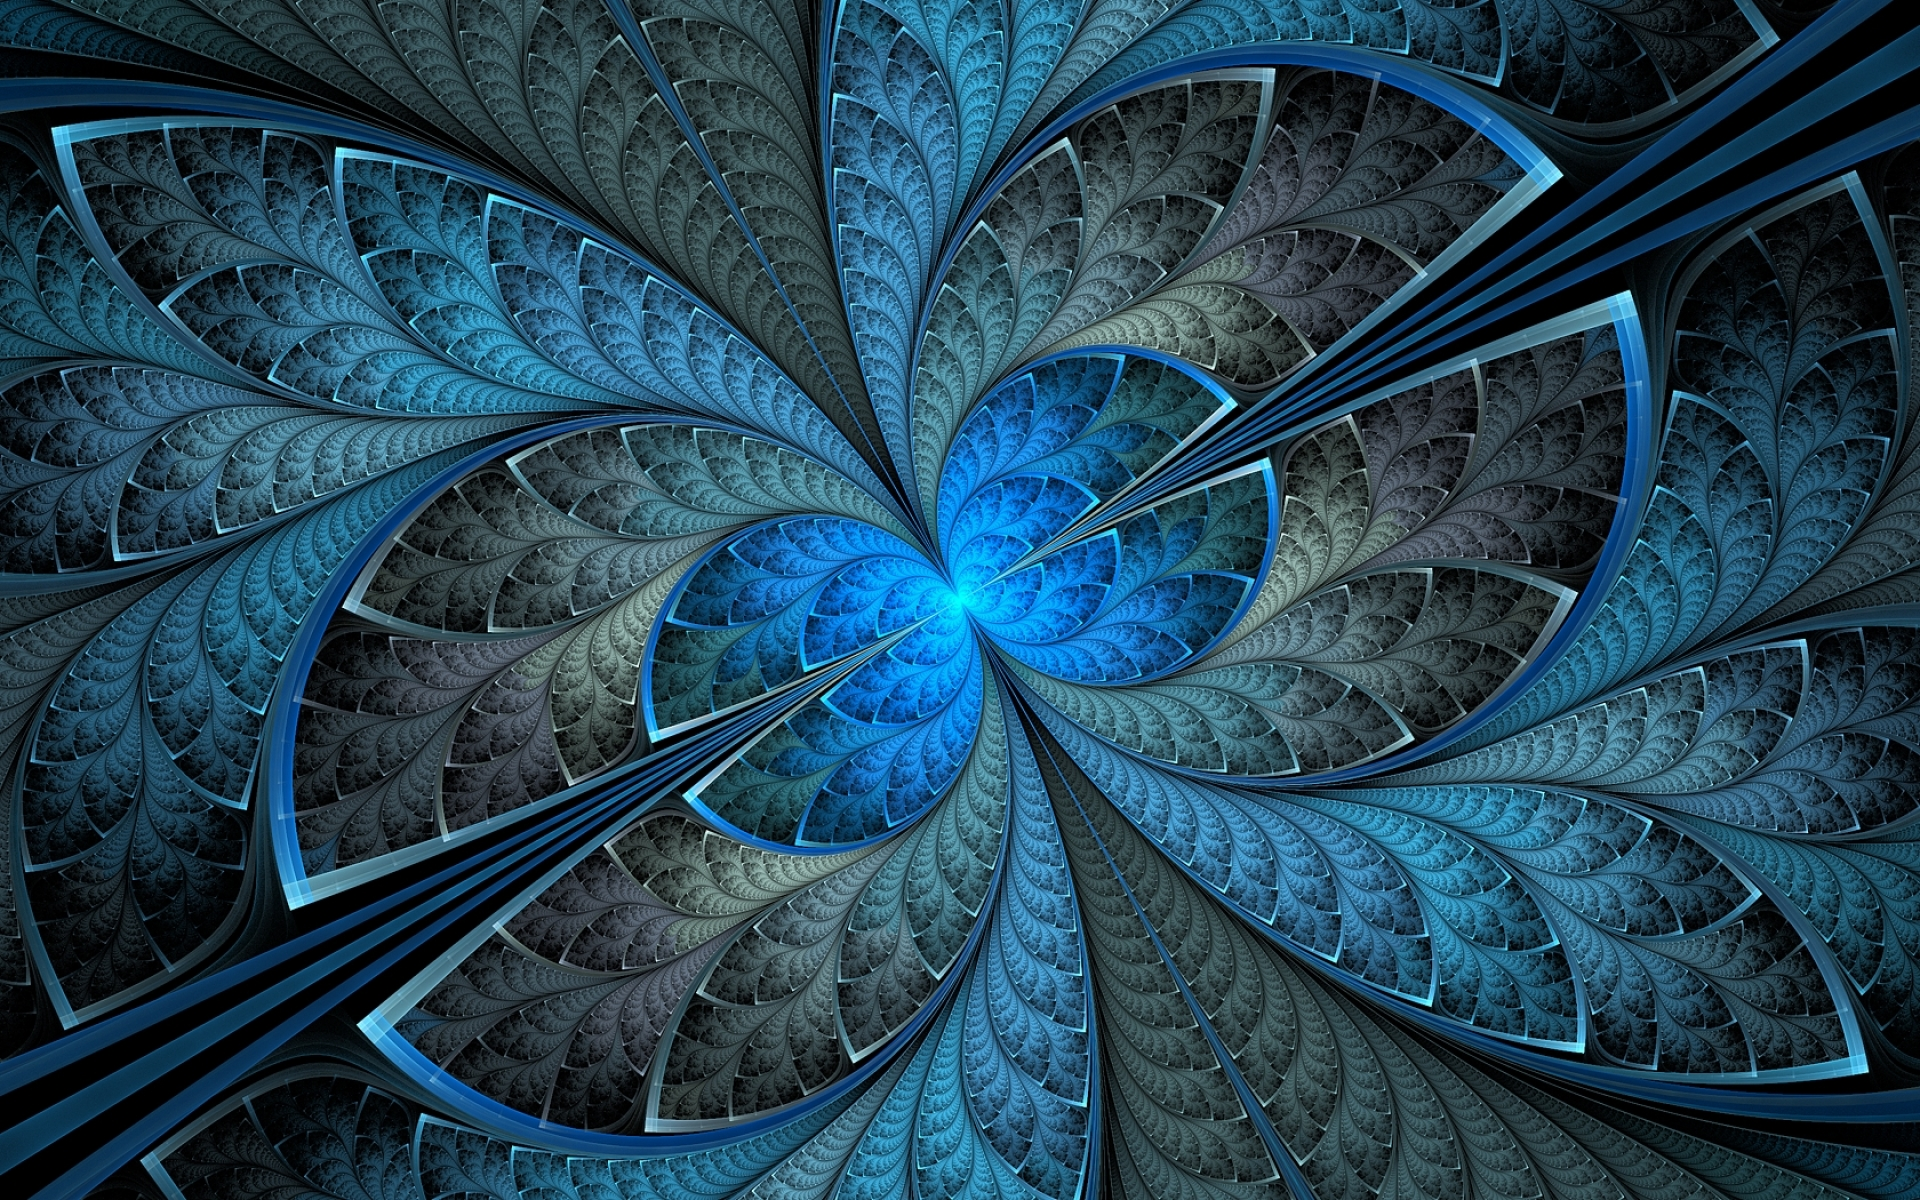 Abstract Fractal wallpapers (Desktop, Phone, Tablet) - Awesome ...